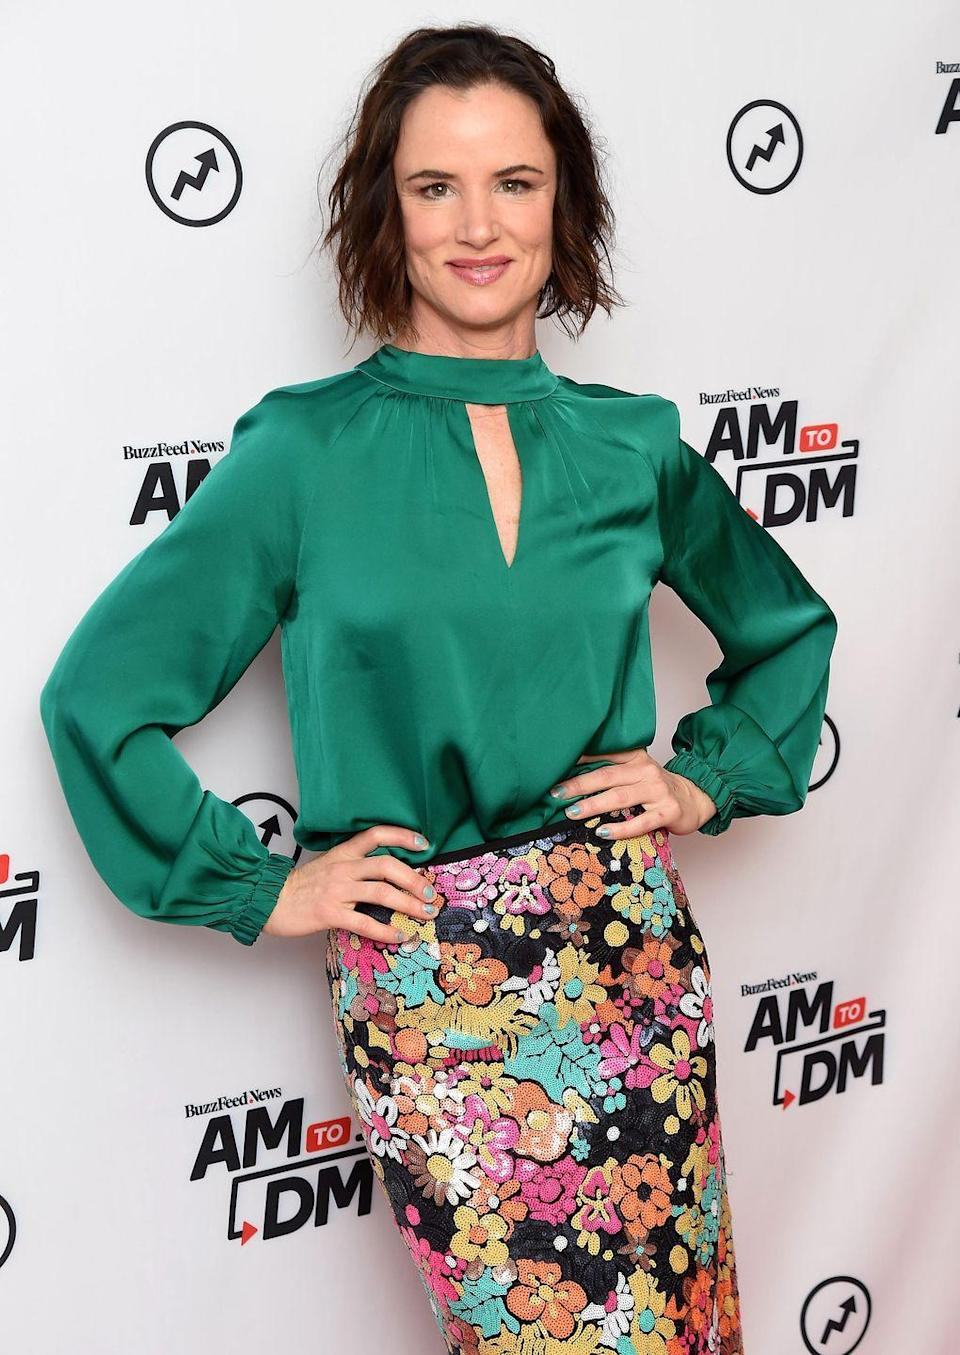 <p>Lewis is still a successful actress today, with roles in films like <em>Hick, Hellion</em>, and <em>Ma</em>. She has released some music and appeared in multiple television shows, such as <em>The Act.</em> </p>